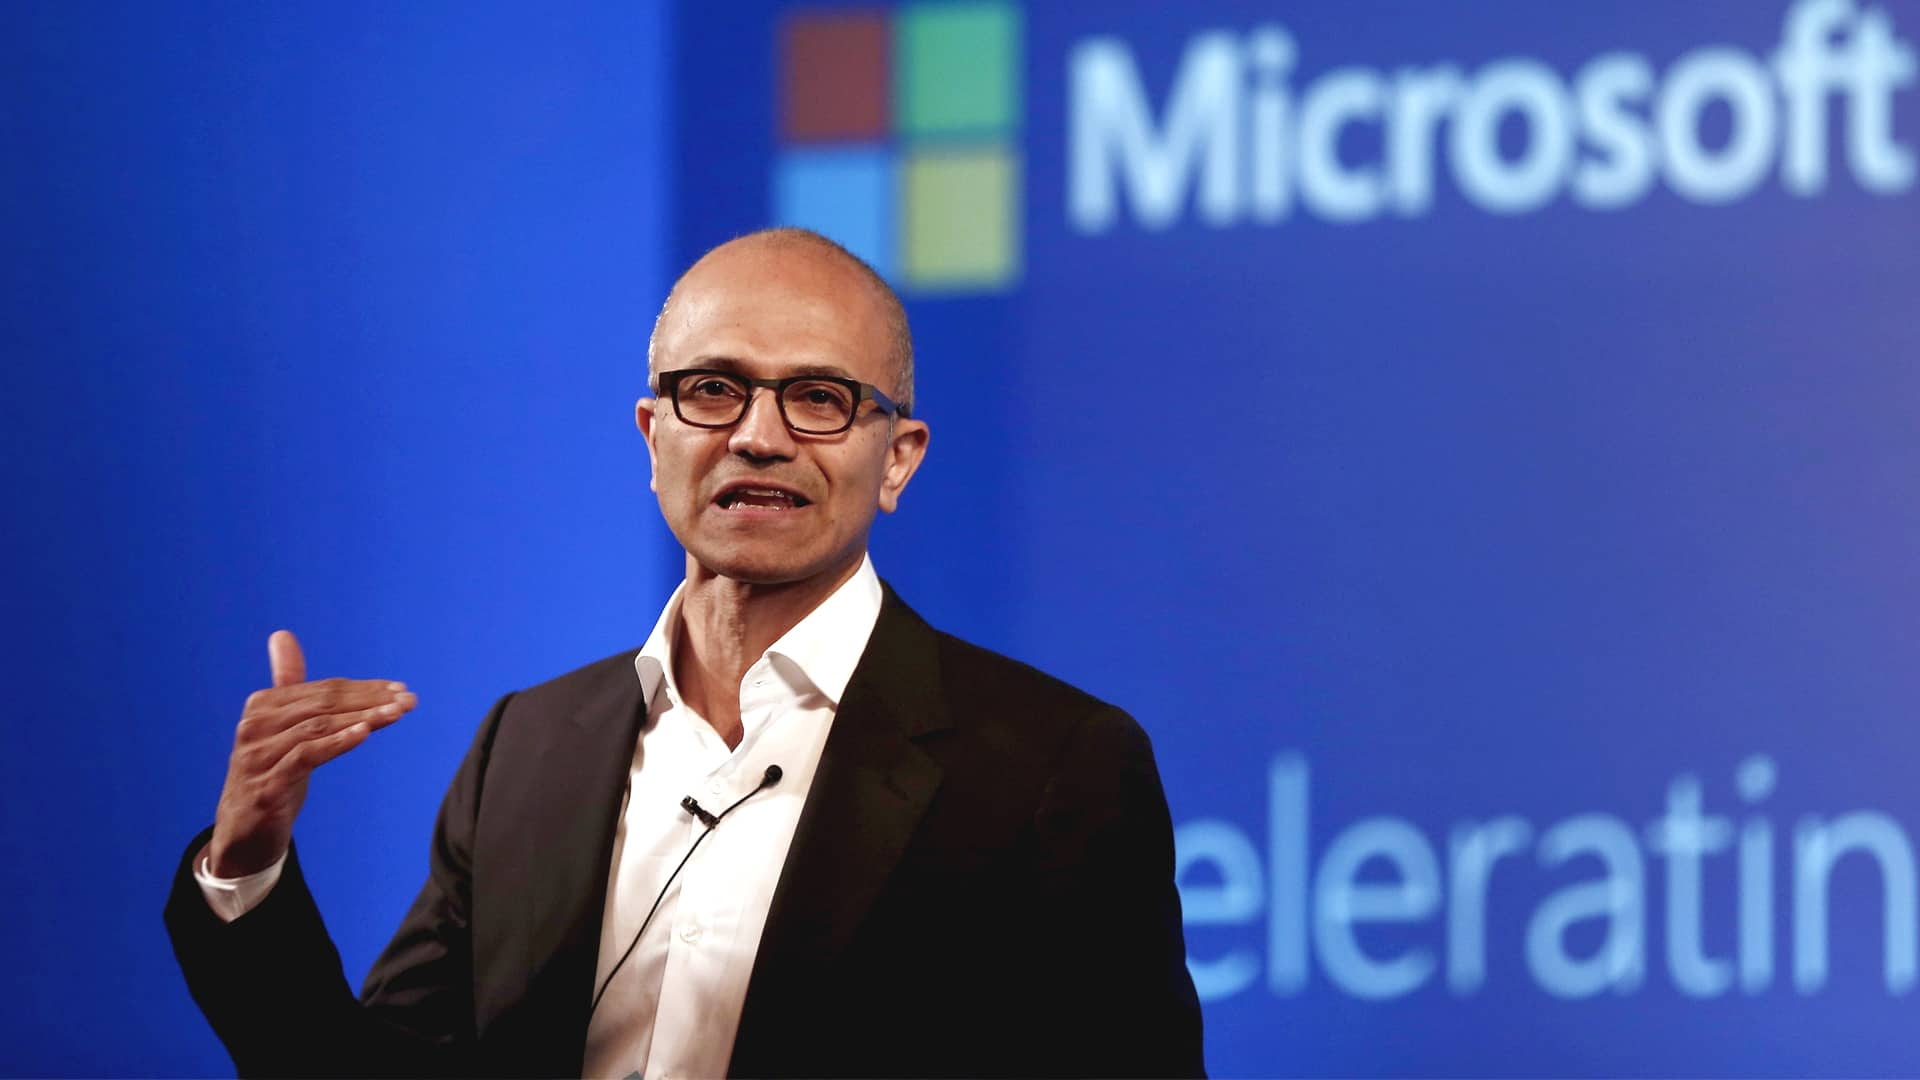 Digital technology now core to resilience, business continuity: Satya Nadella